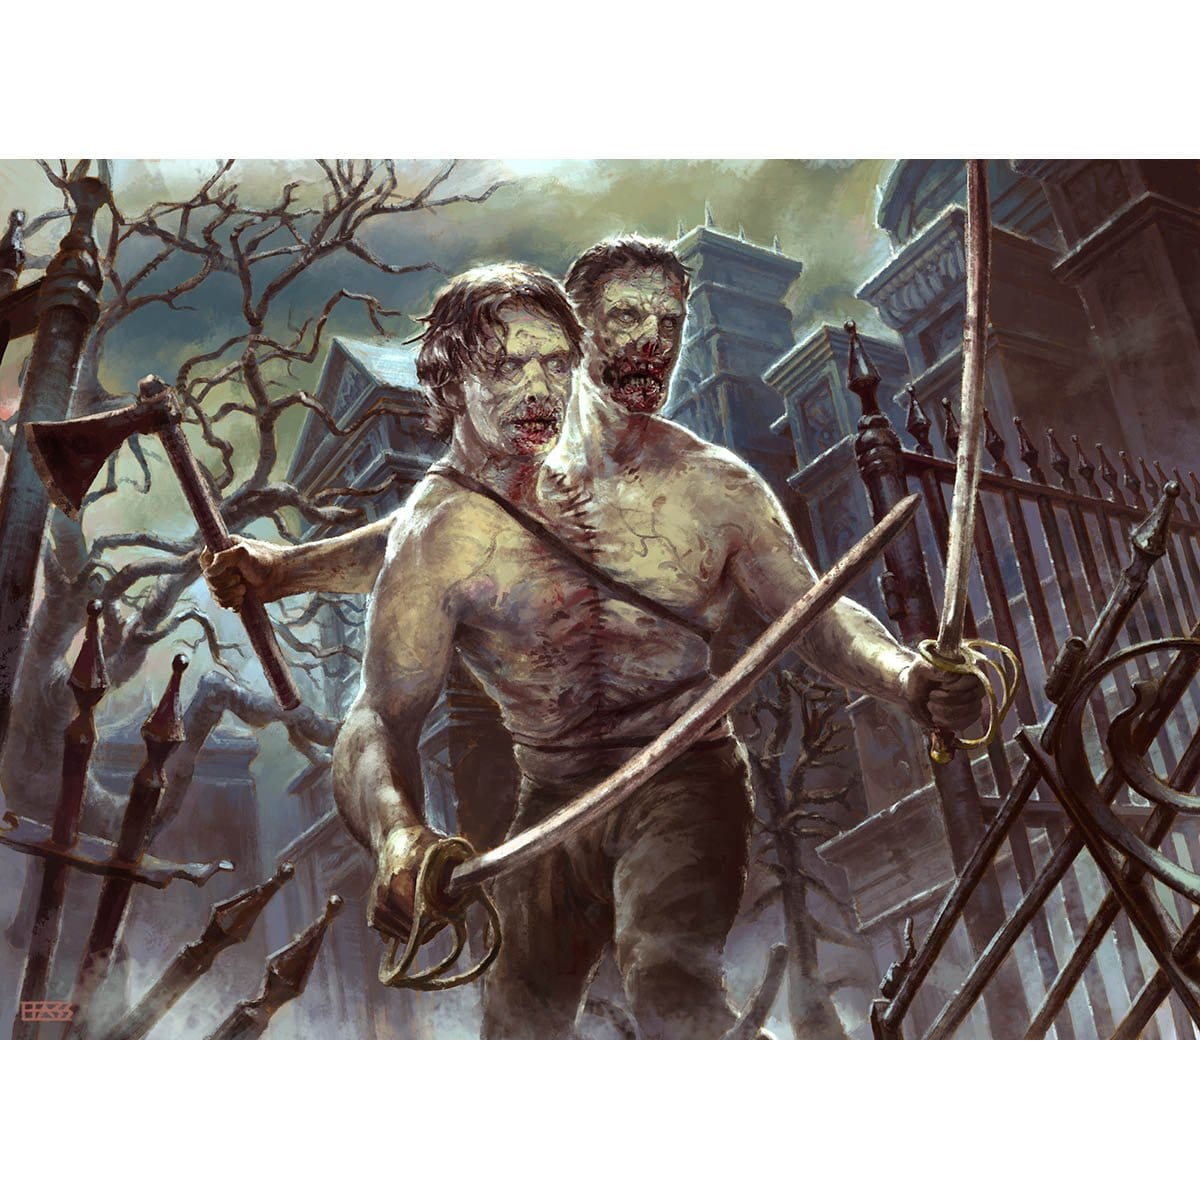 Two-Headed Zombie Print - Print - Original Magic Art - Accessories for Magic the Gathering and other card games